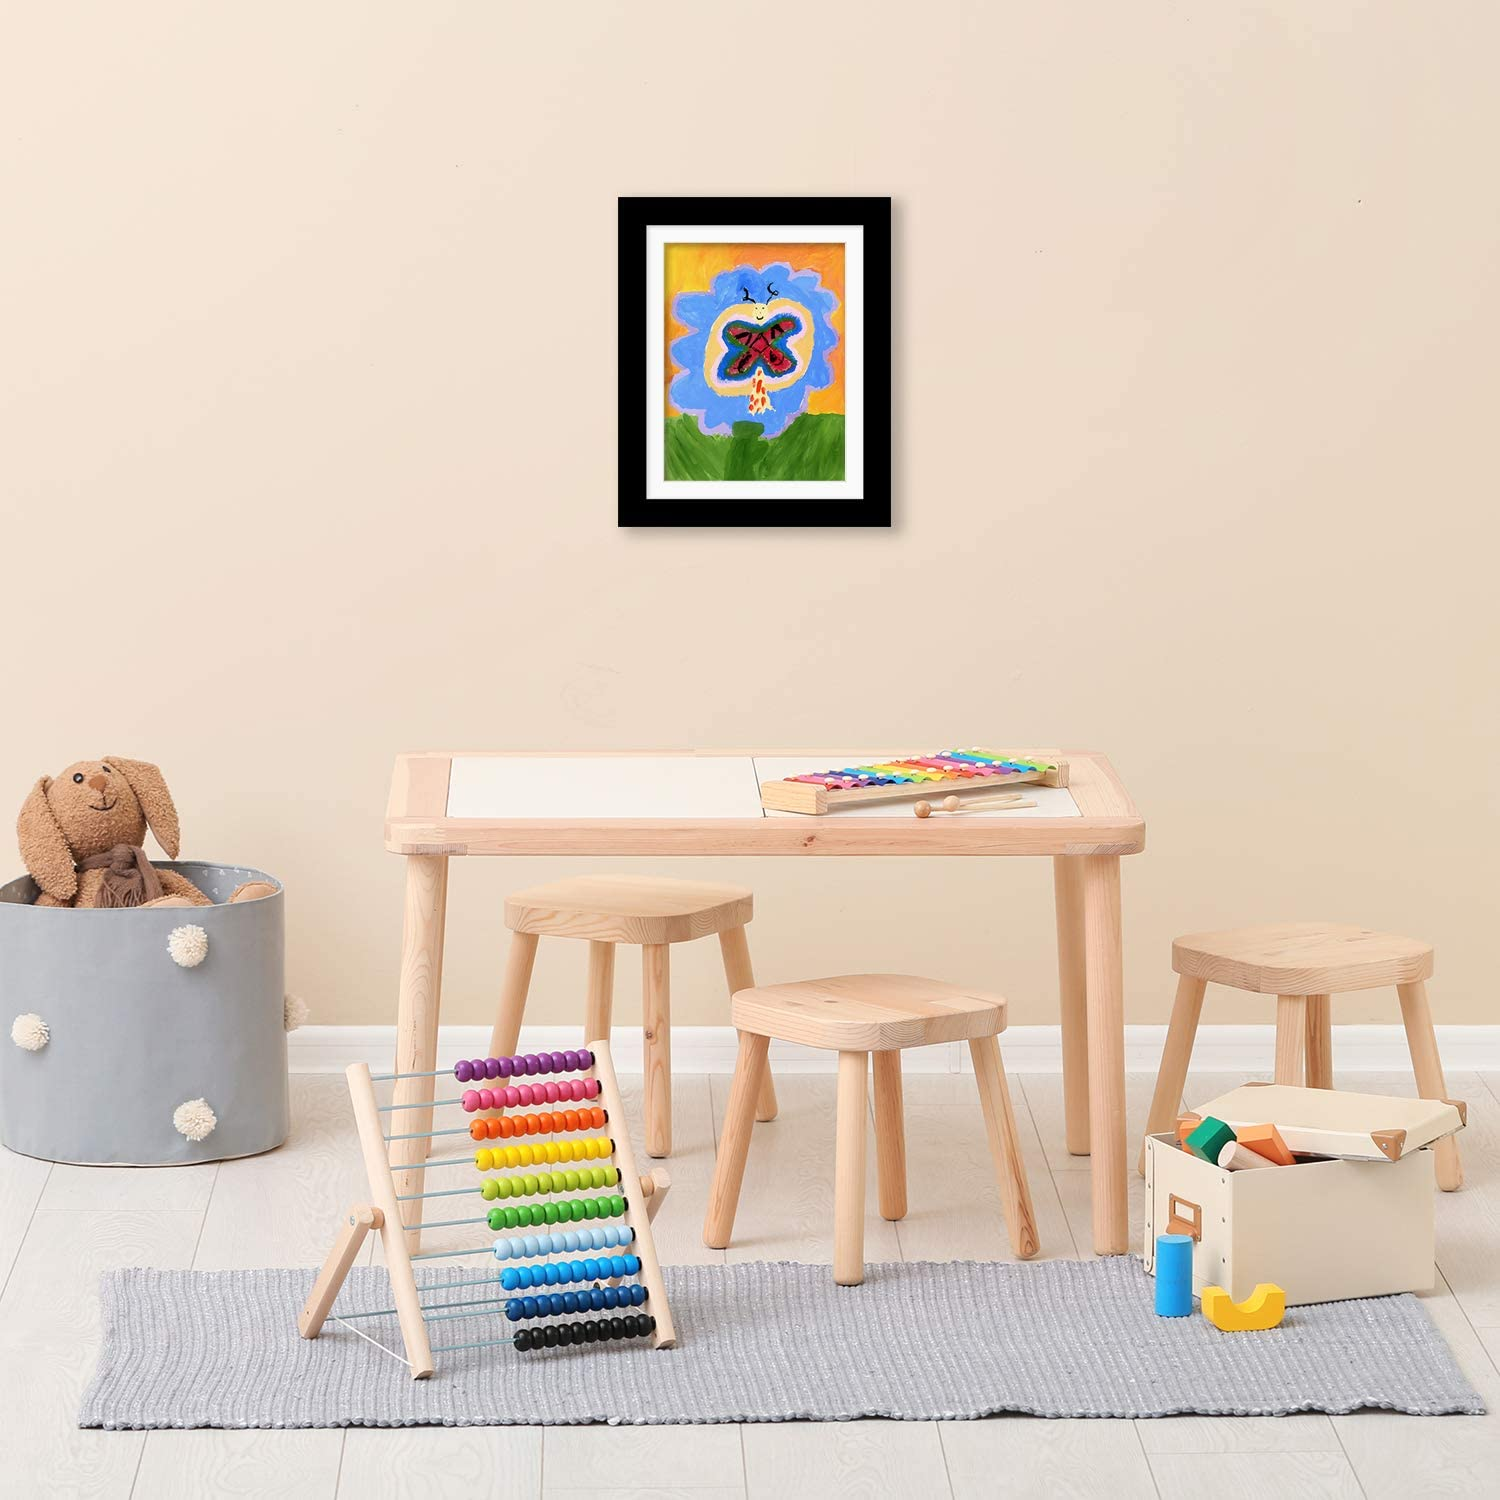 Americanflat Black Kids Artwork Picture Frame with Shatter-Resistant Glass Display Artworks Sized 8.5x11 with Mat and 10x12.5 Without Mat